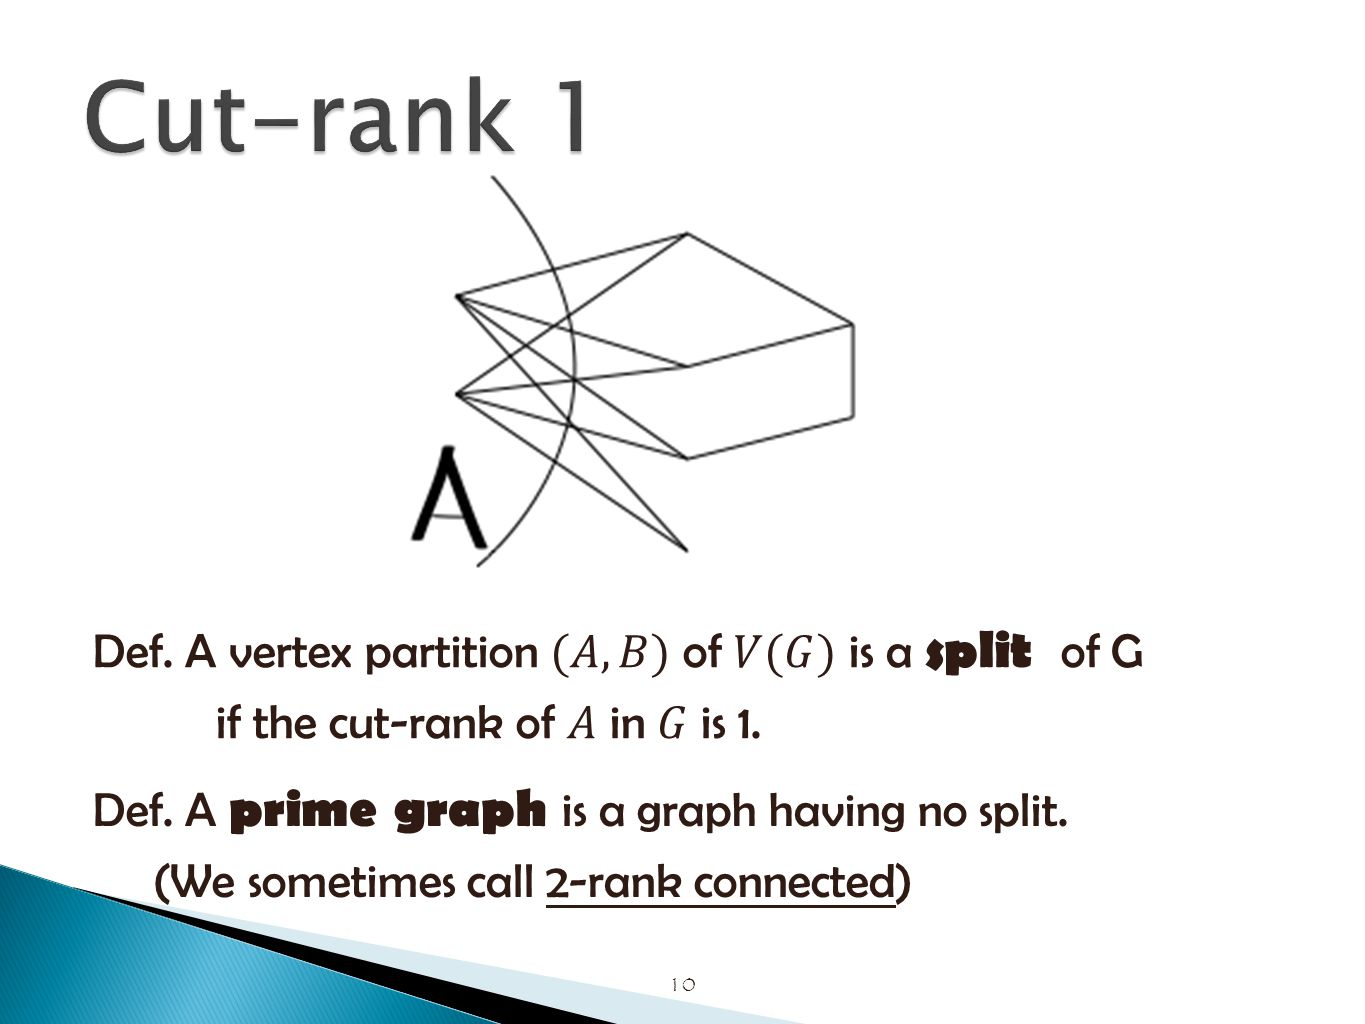 10 Def. A prime graph is a graph having no split. (We sometimes call 2-rank connected)